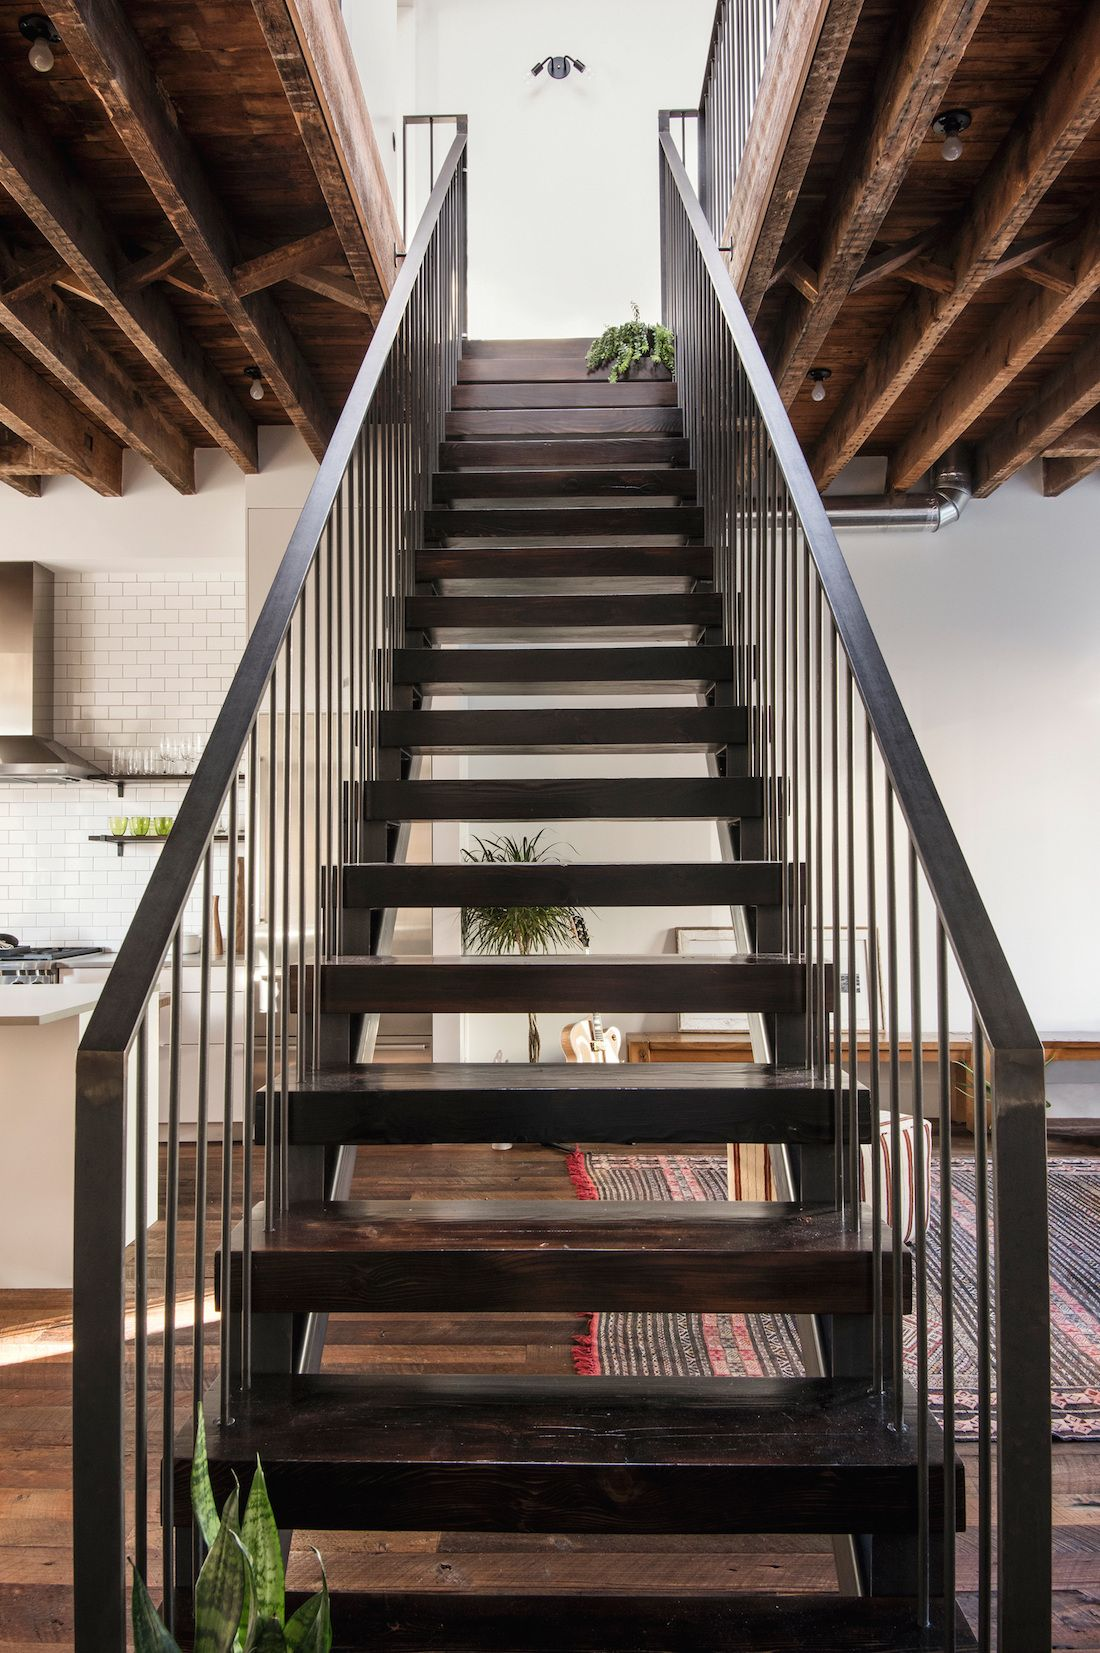 A Whole House Overhaul In Brooklyn With A High/Low Mix (Remodelista:  Sourcebook For The Considered Home). TownhouseMetal StairsWooden  StepsCeramic ...